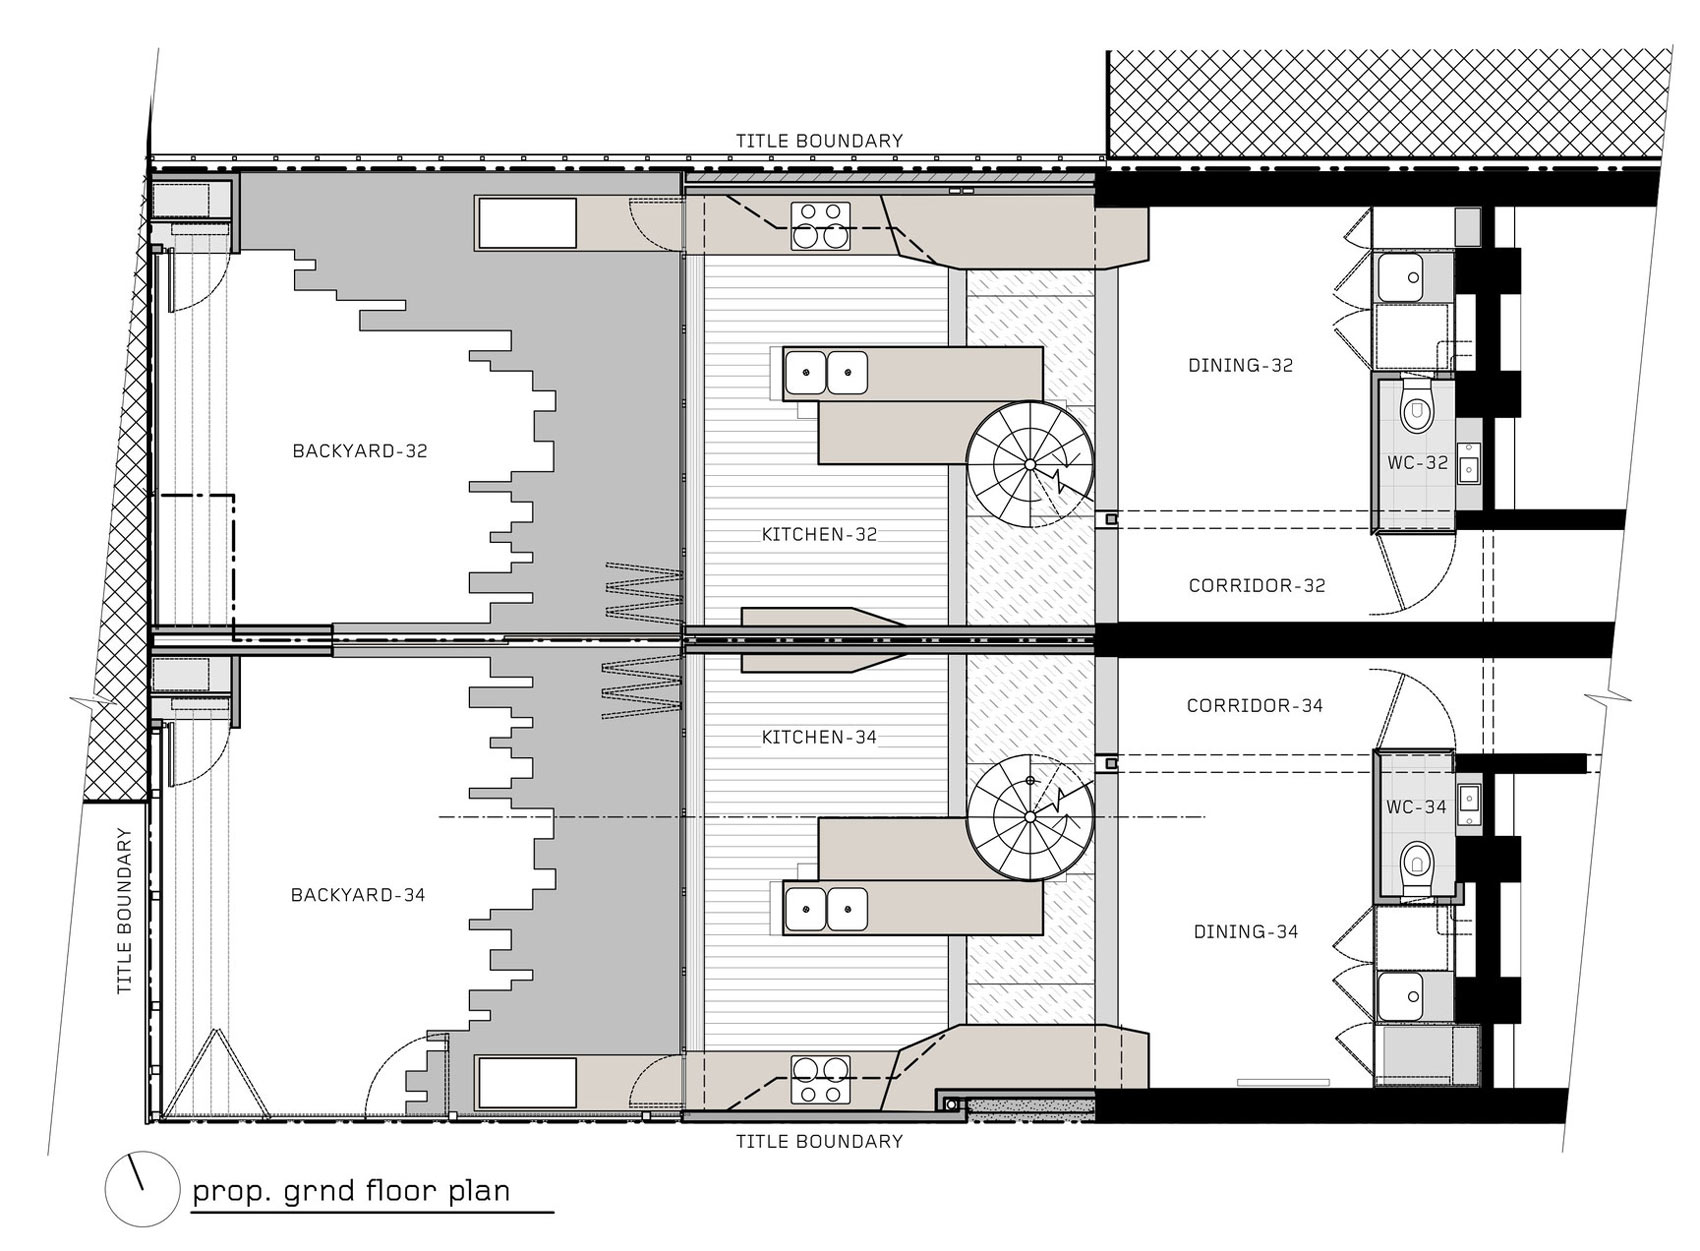 Ground Floor Plan, Two-Home Extension Within a Single Building in Richmond, Australia